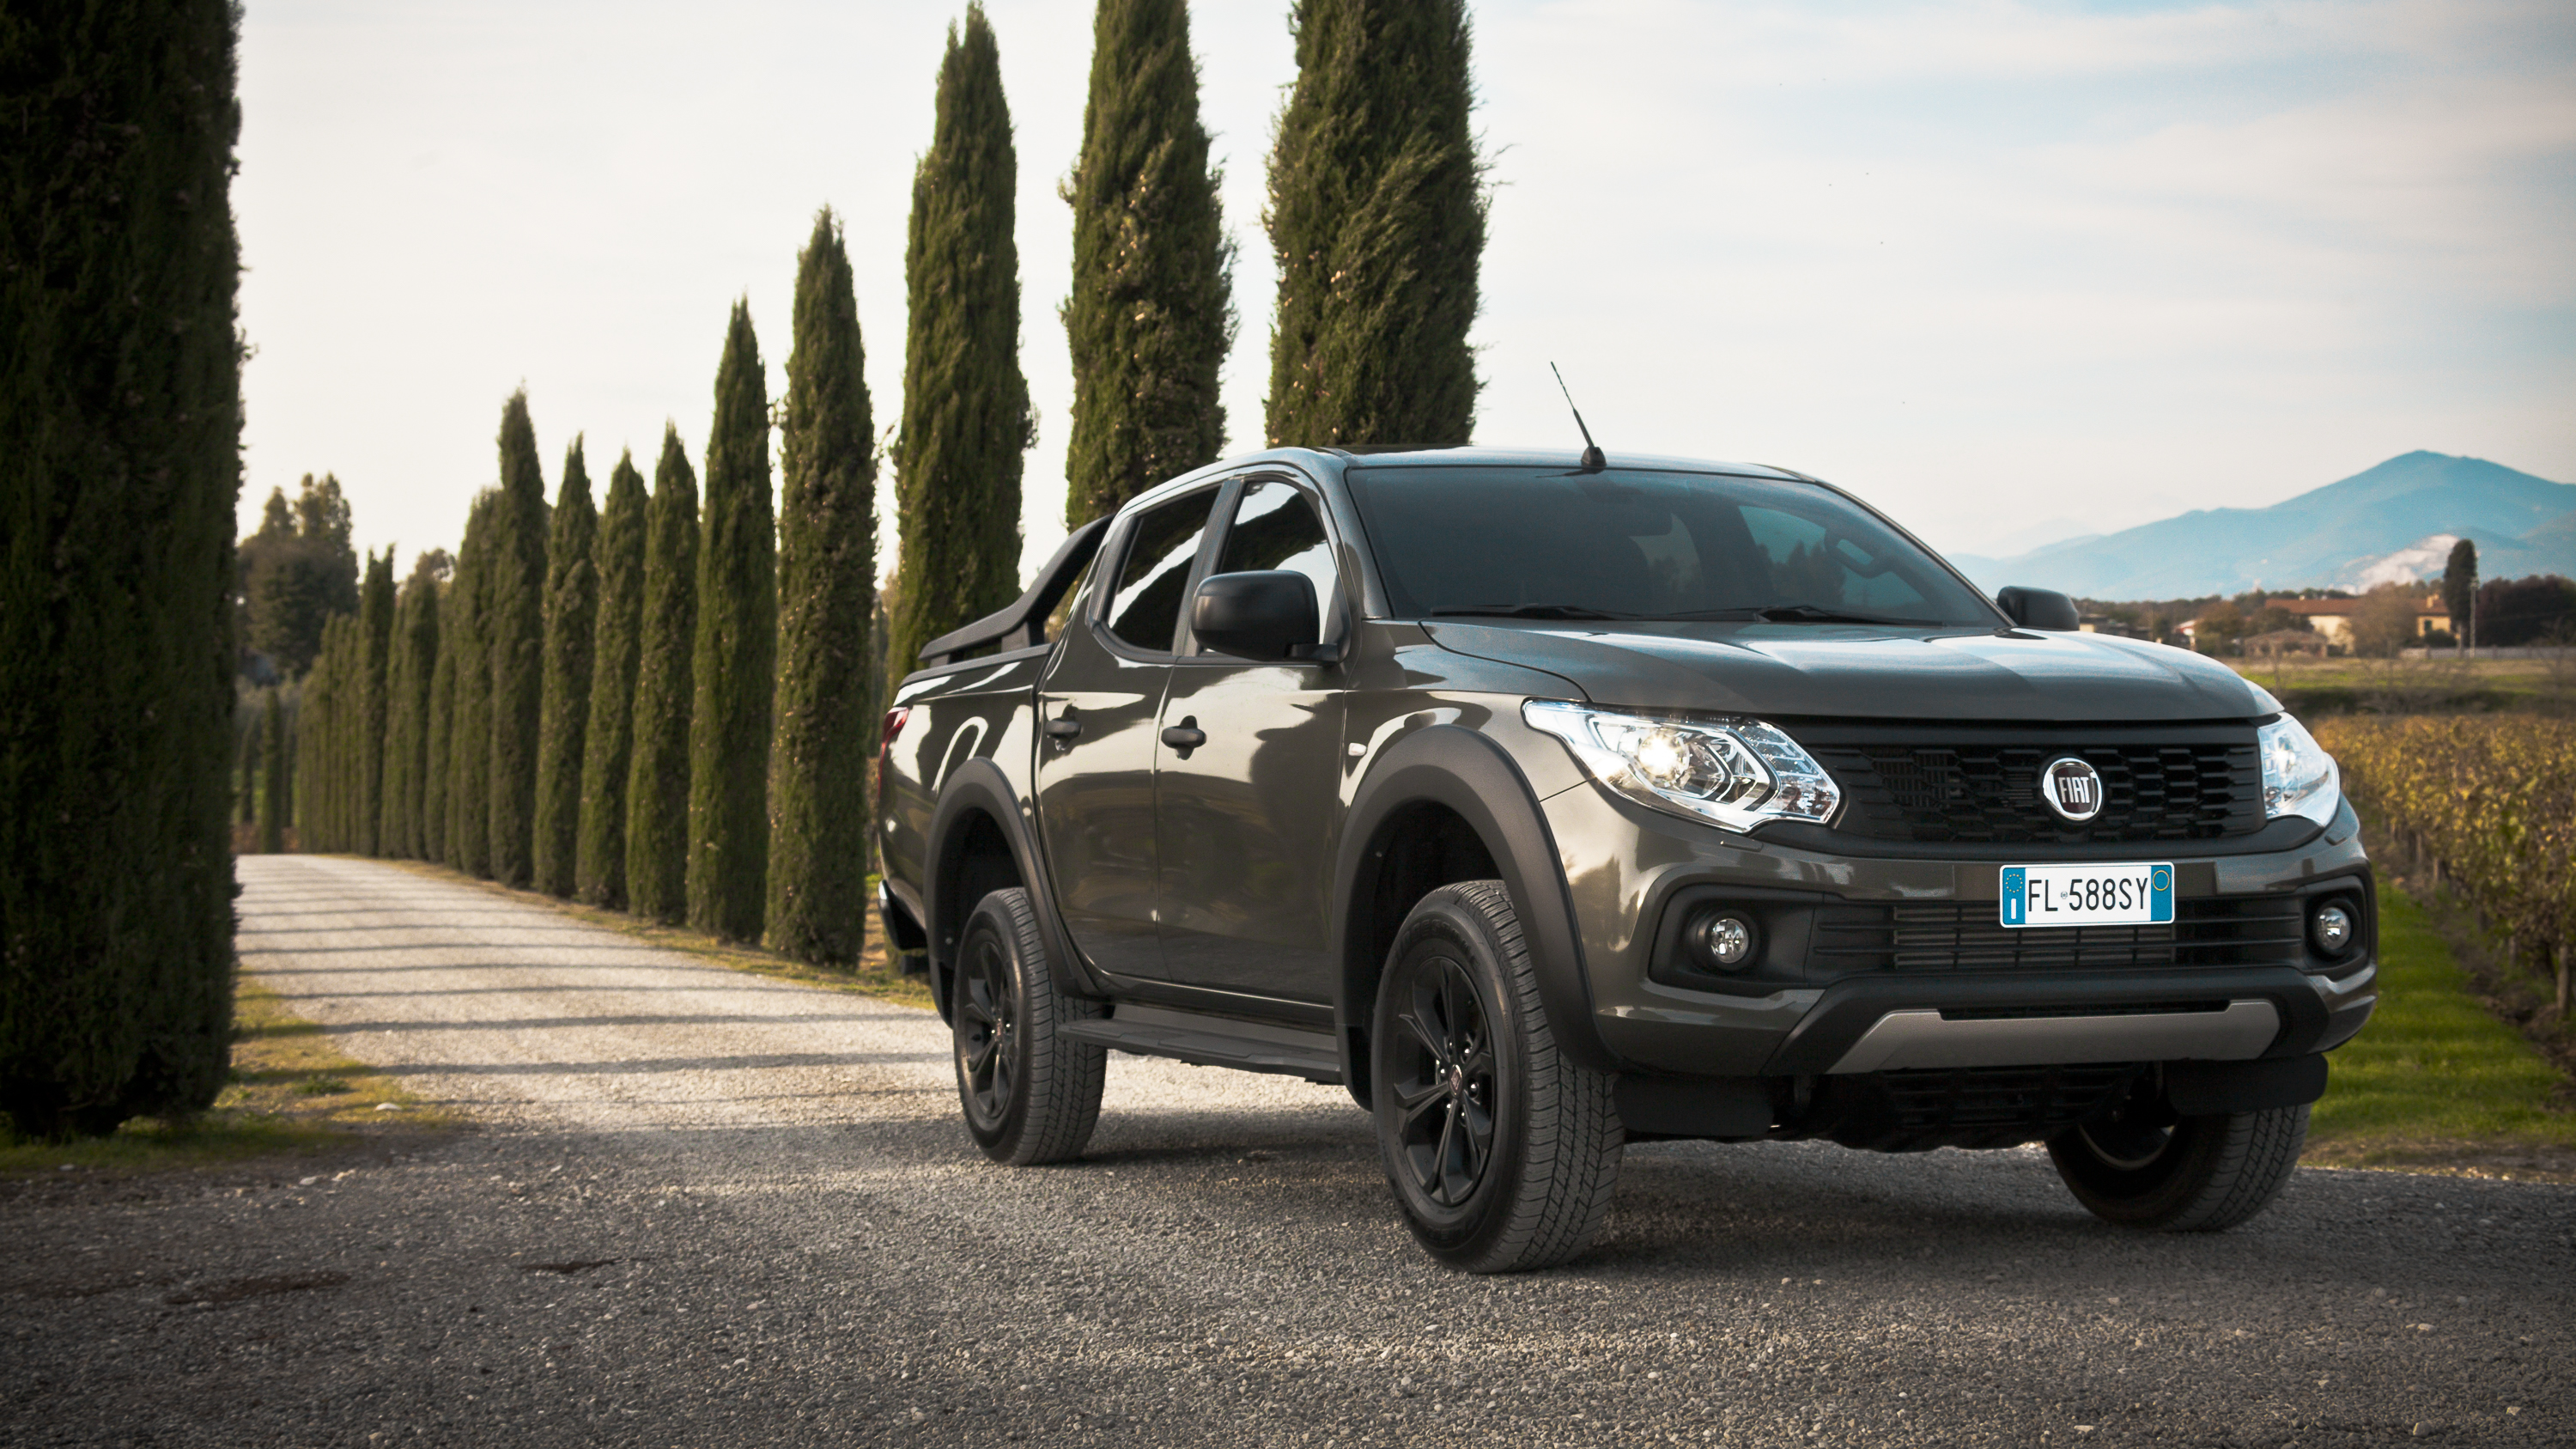 essai fiat fullback cross cette fois l italien se d marque link2fleet for a smarter mobility. Black Bedroom Furniture Sets. Home Design Ideas